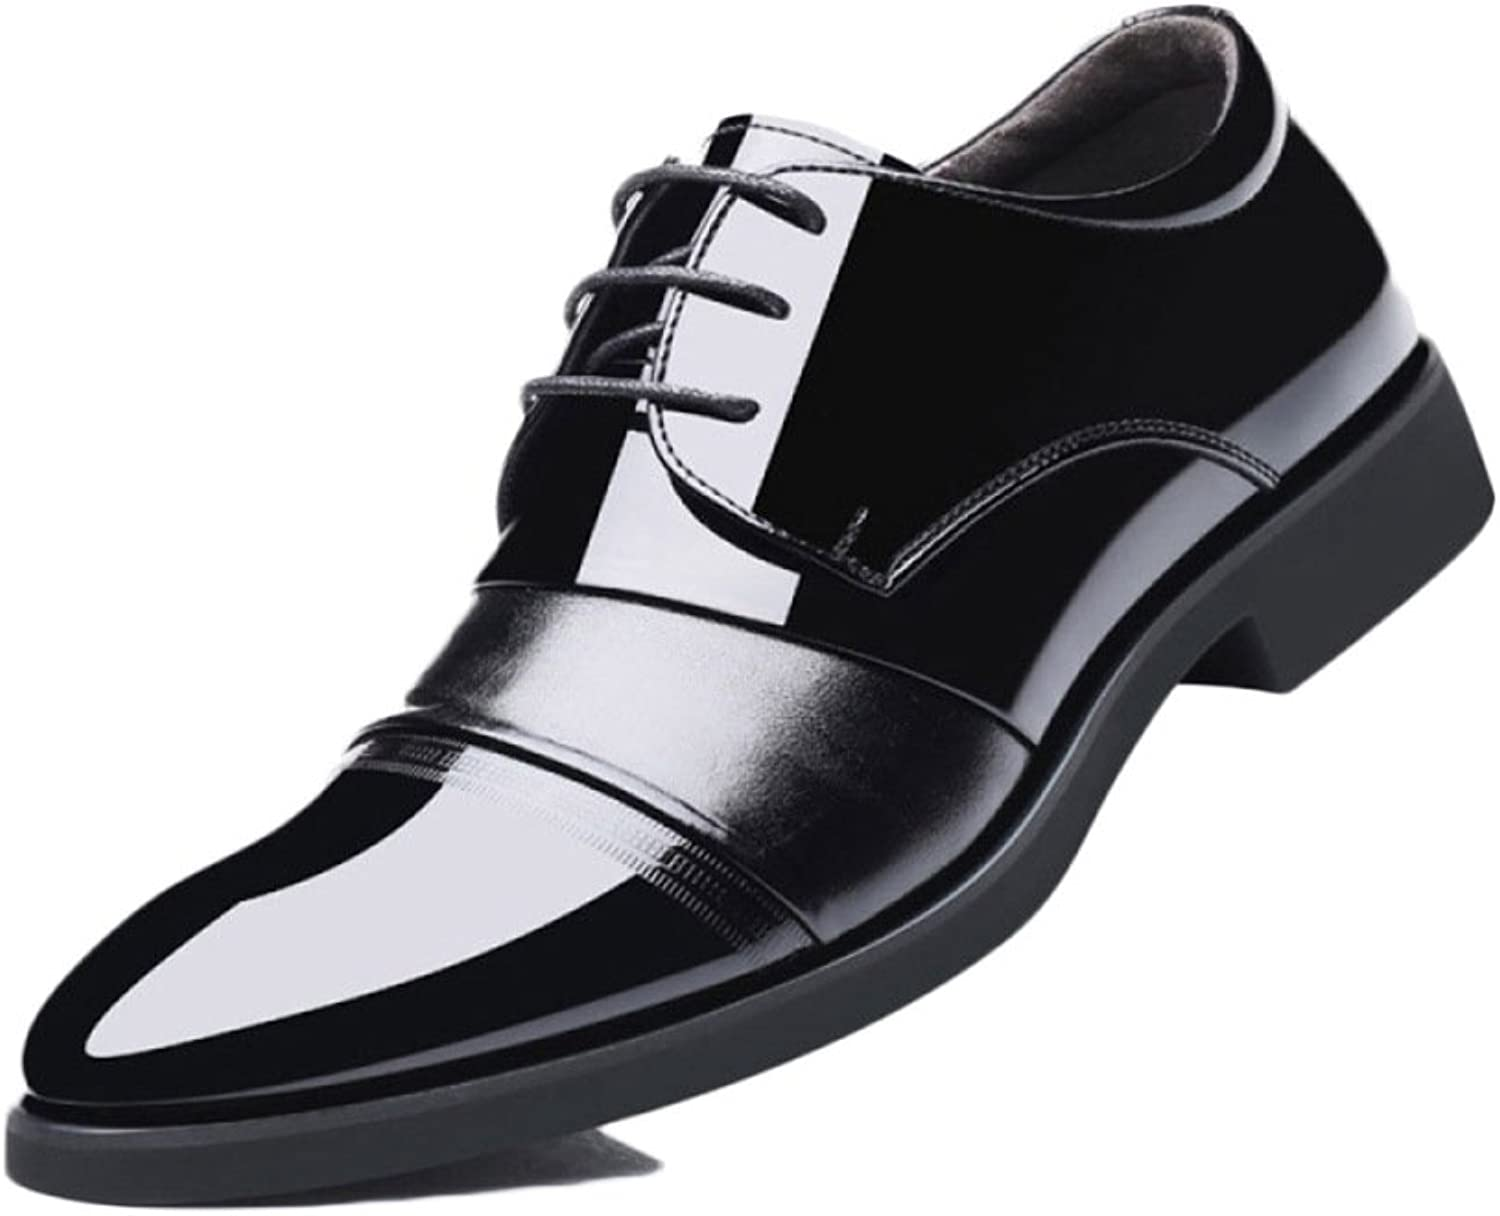 Male Leather shoes Black Tie Formal Soft Commerce Increased Within 6cm Dress shoes Men's shoes Fashion Lace